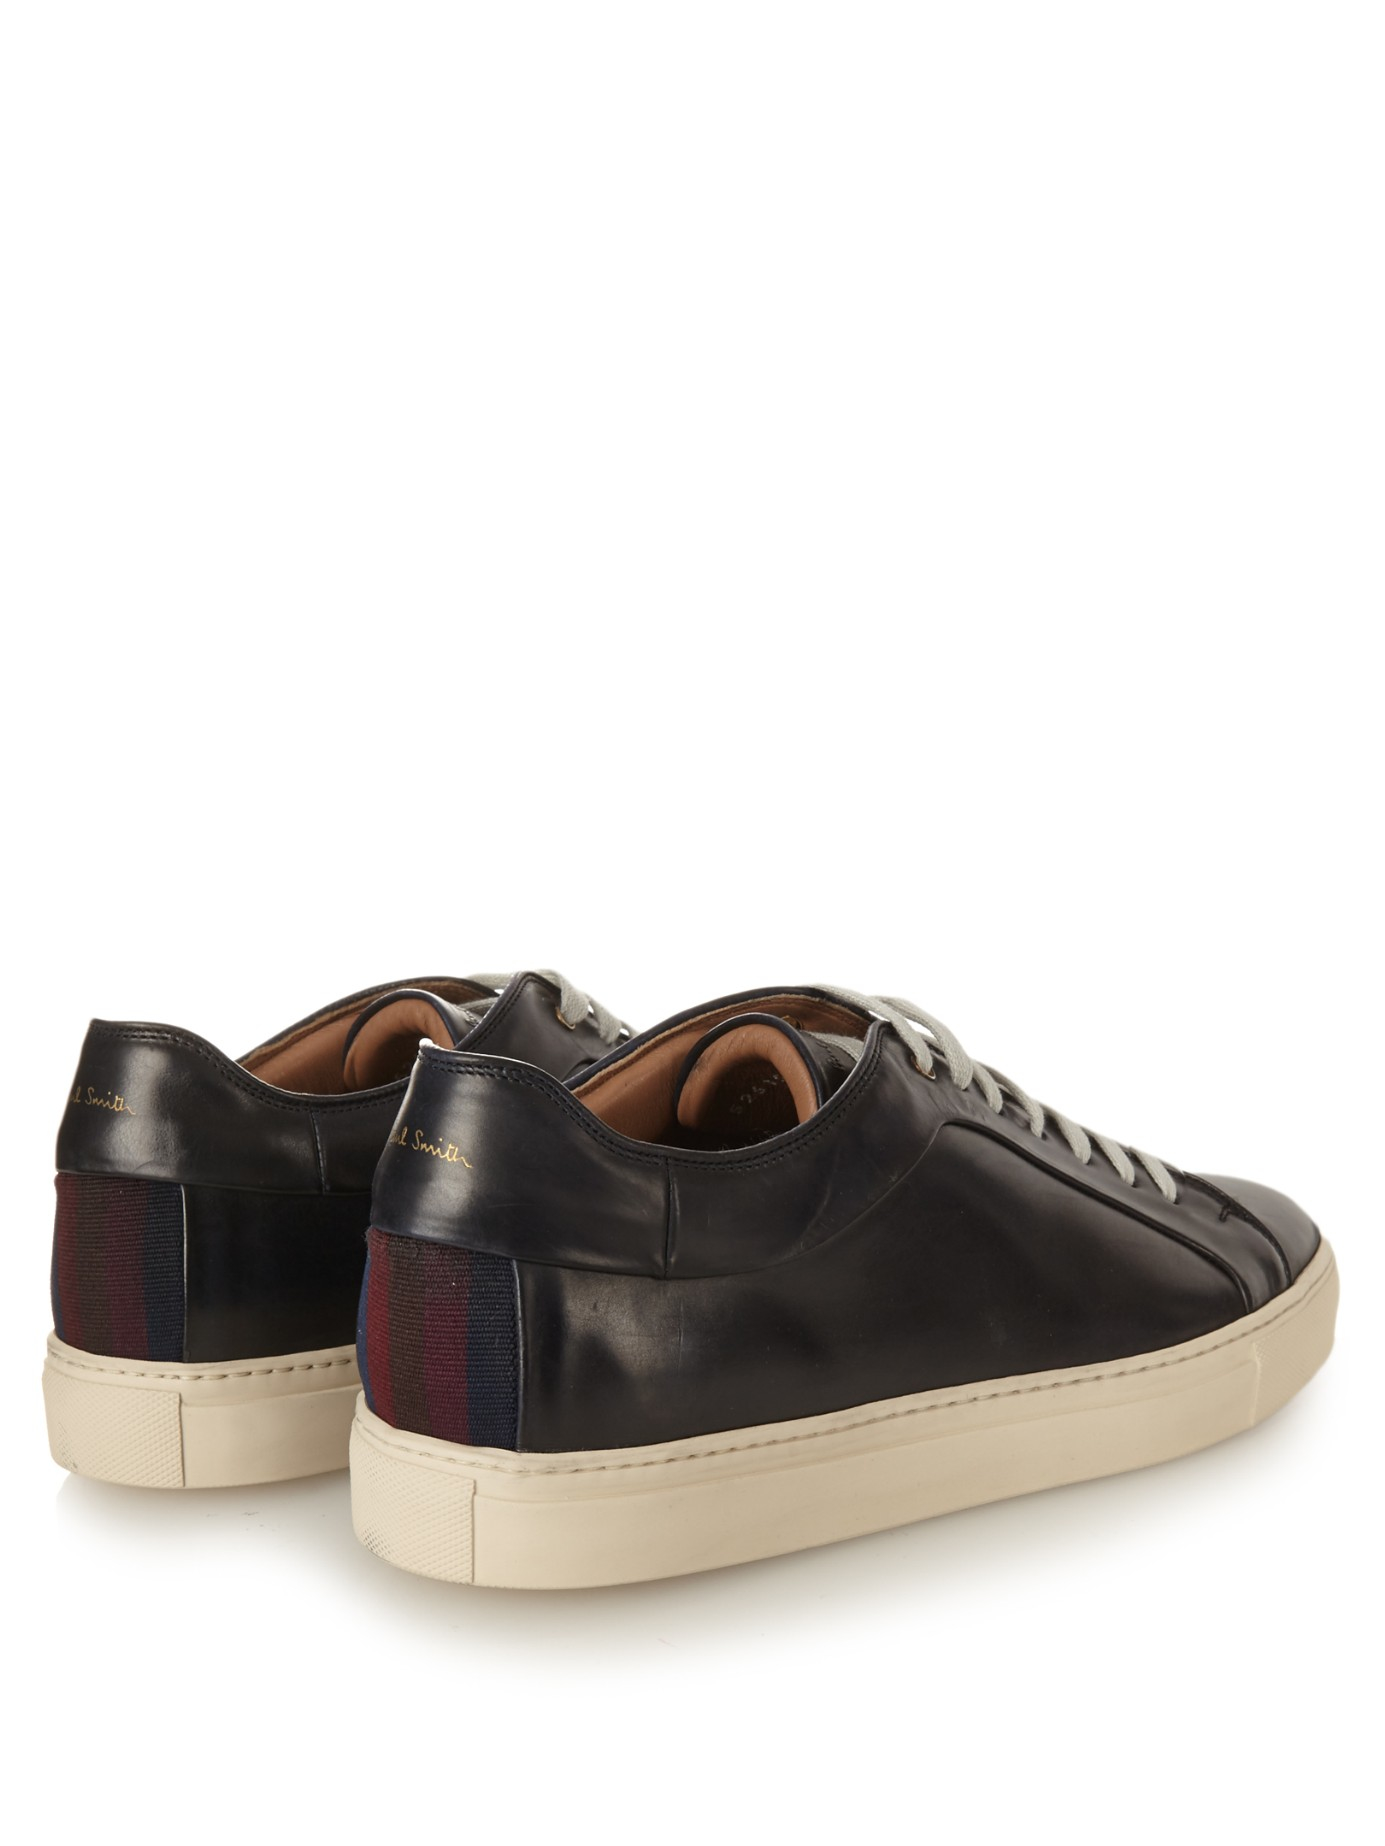 Paul Smith Nastro Striped-back Low-top Leather Trainers in Navy (Blue) for Men